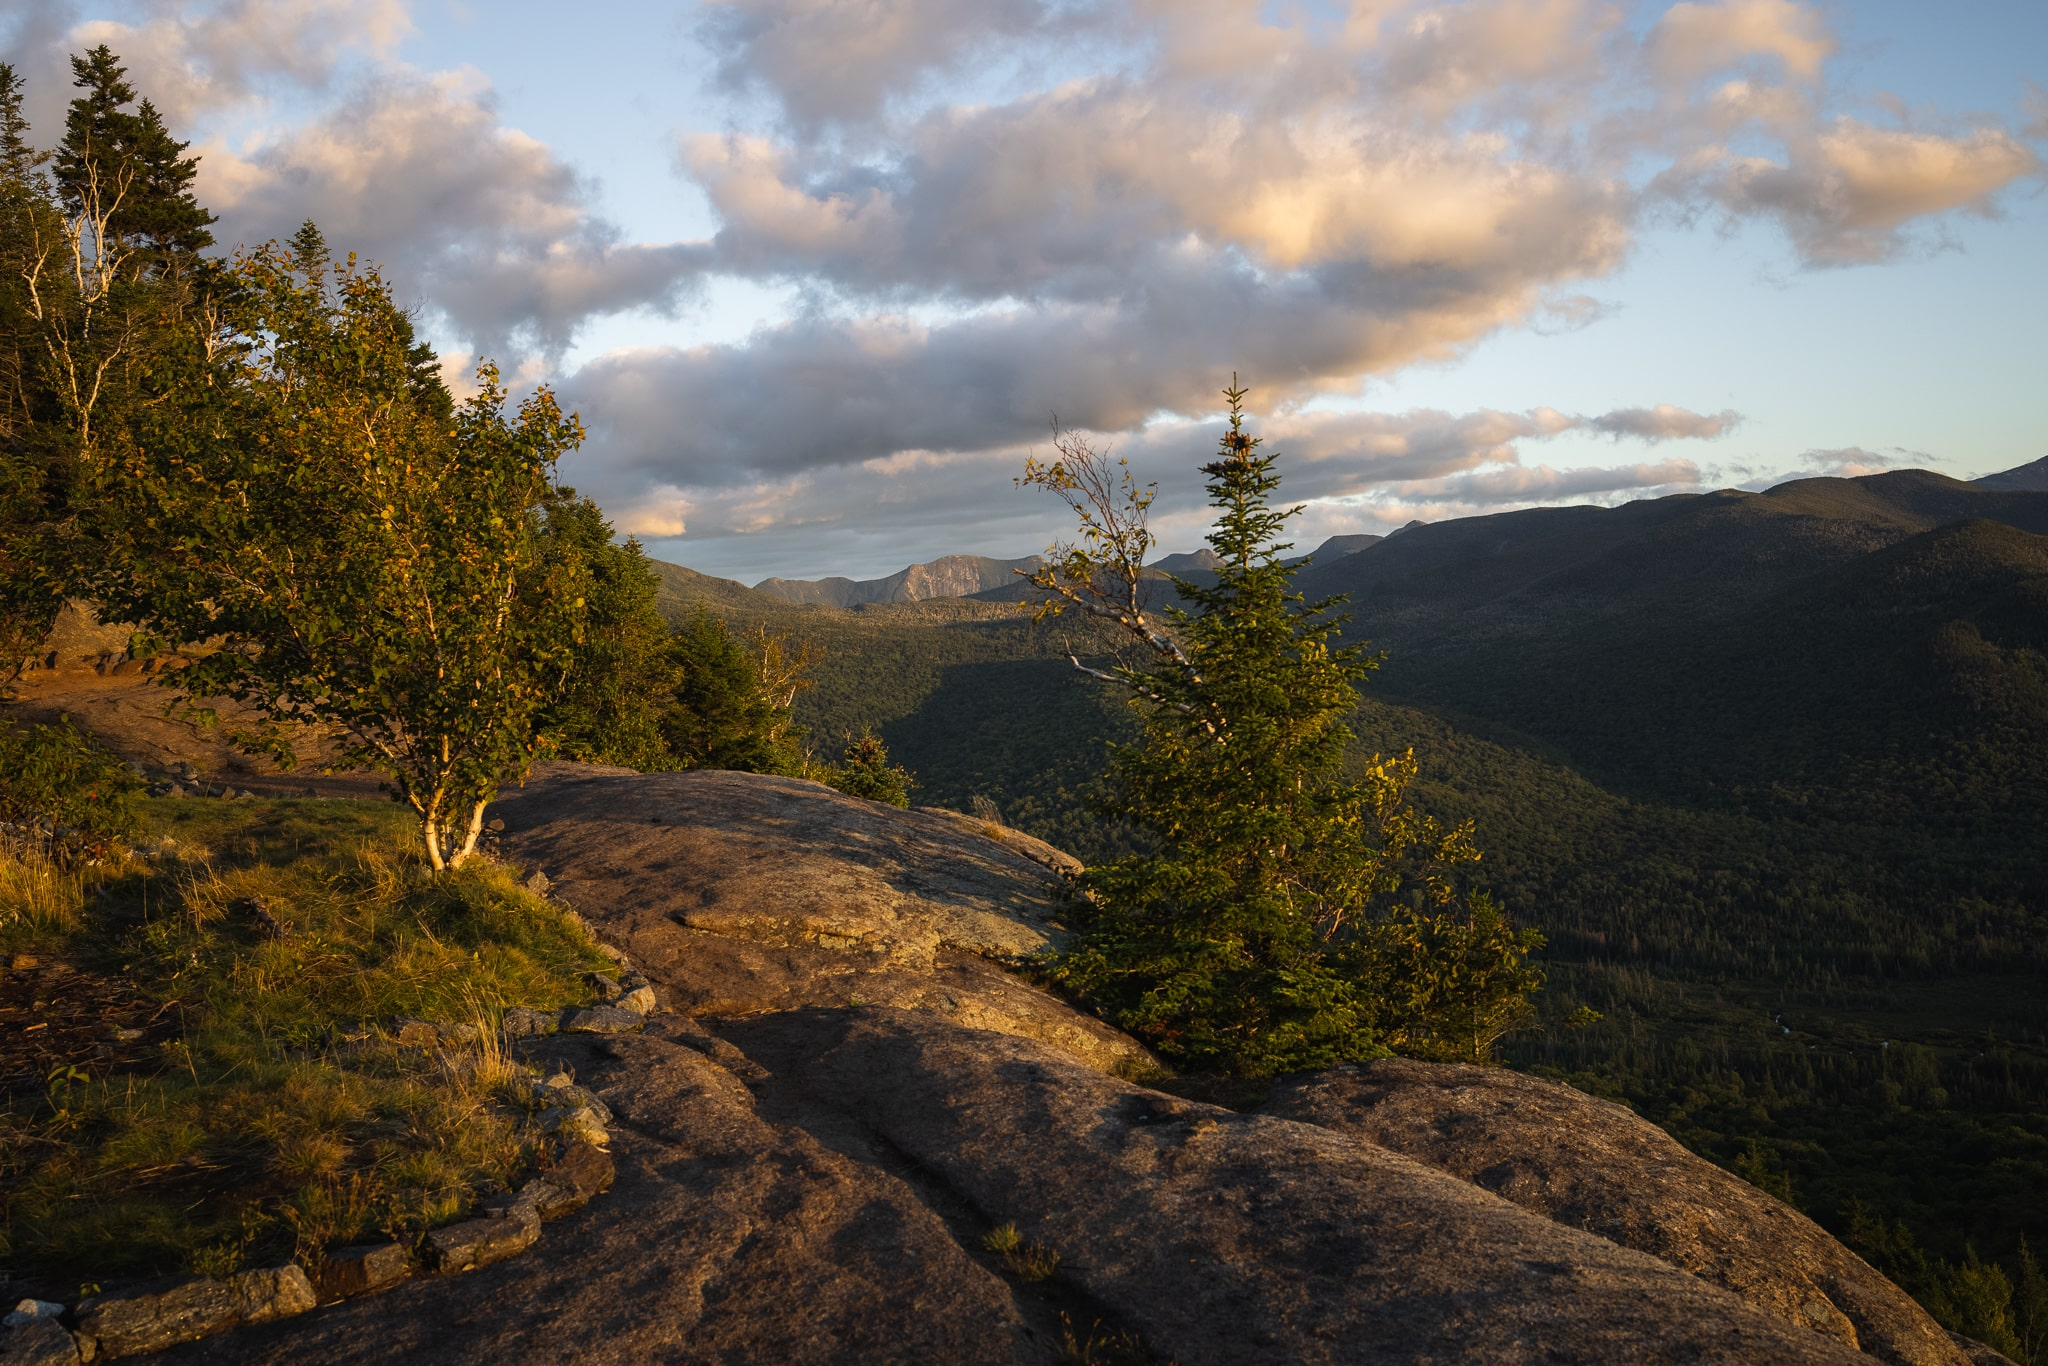 Hiking in the Adirondacks for sunset